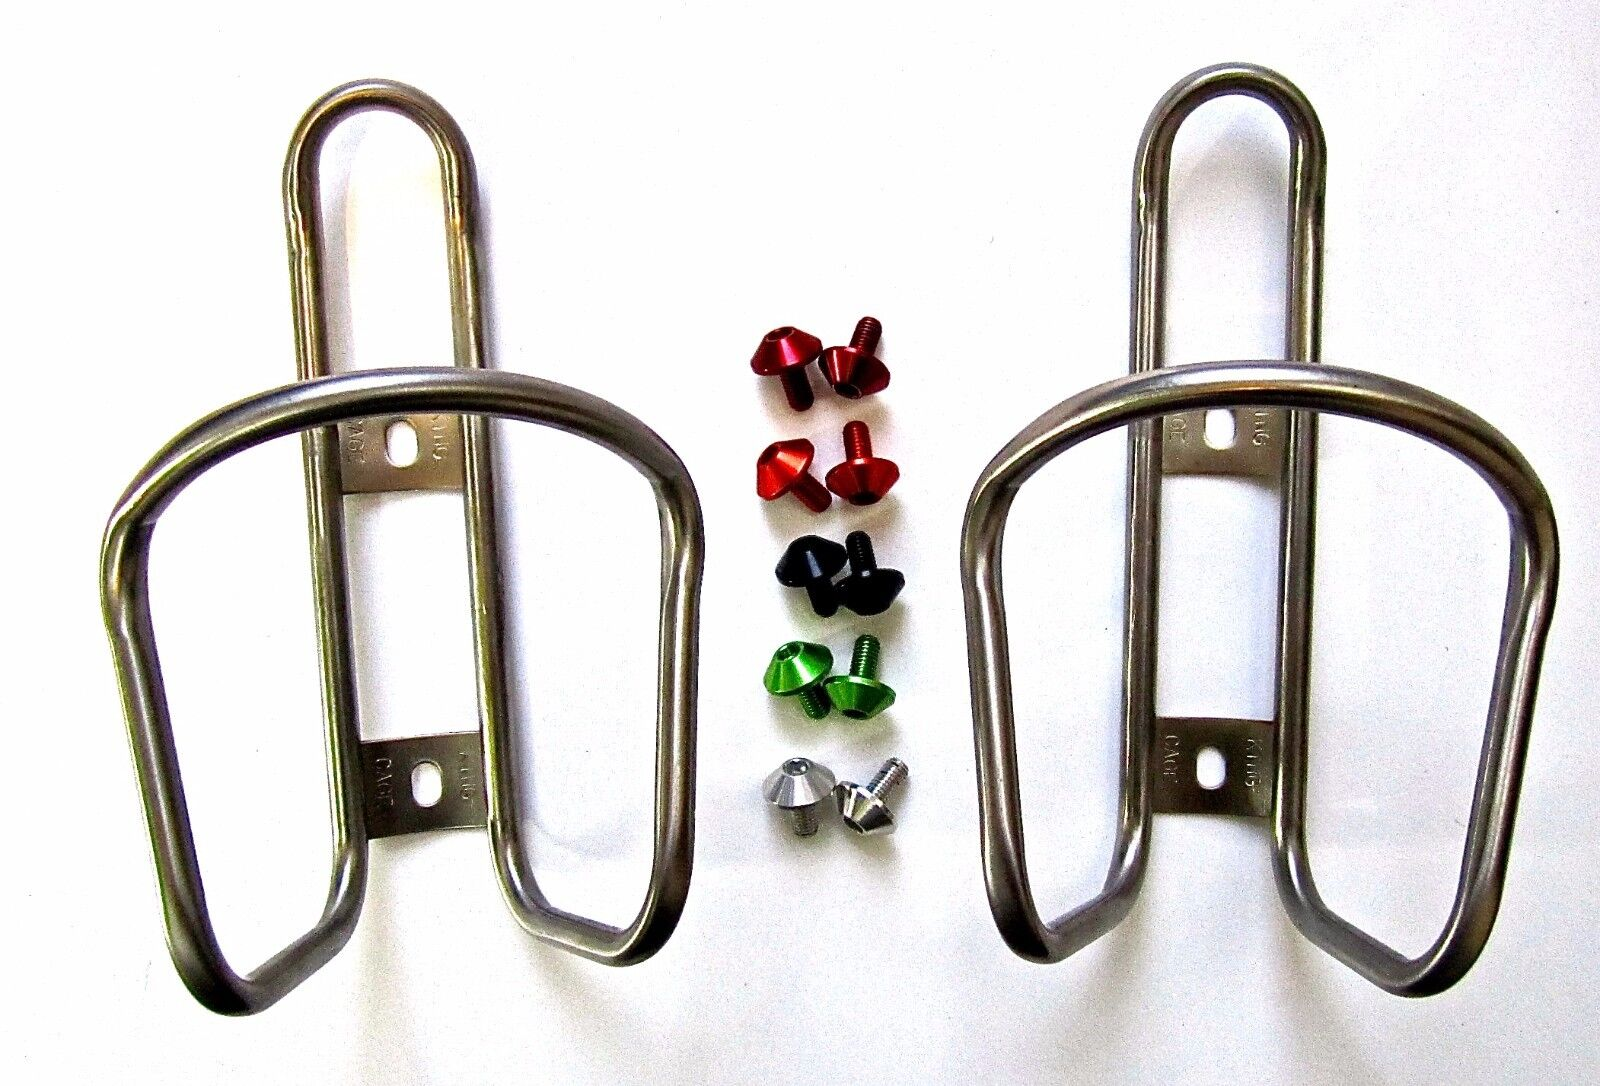 2x King Titanium Ti Bottle Cage 28g +FREE MT ZOOM Shroom bolts tune it extralite